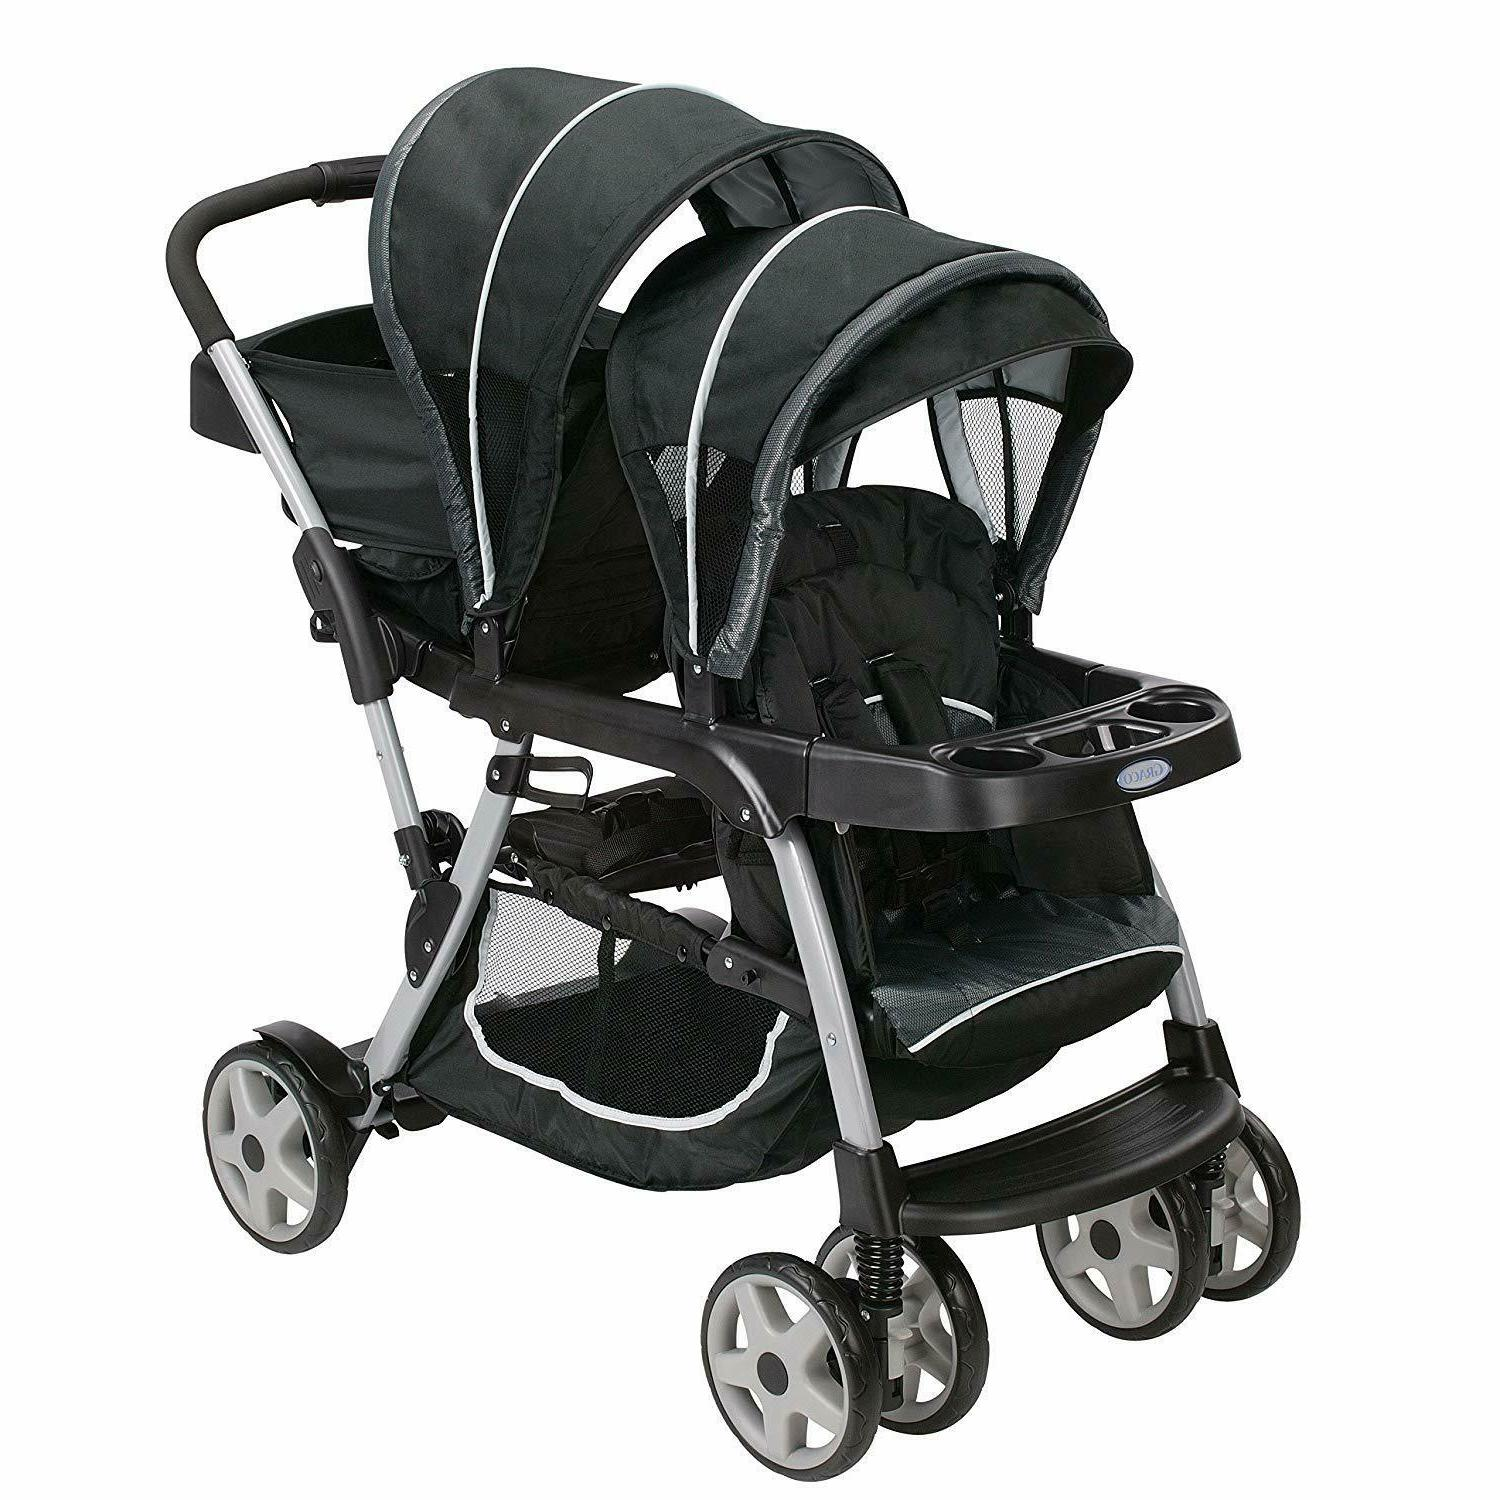 new ready2grow lx double stroller lightweight double